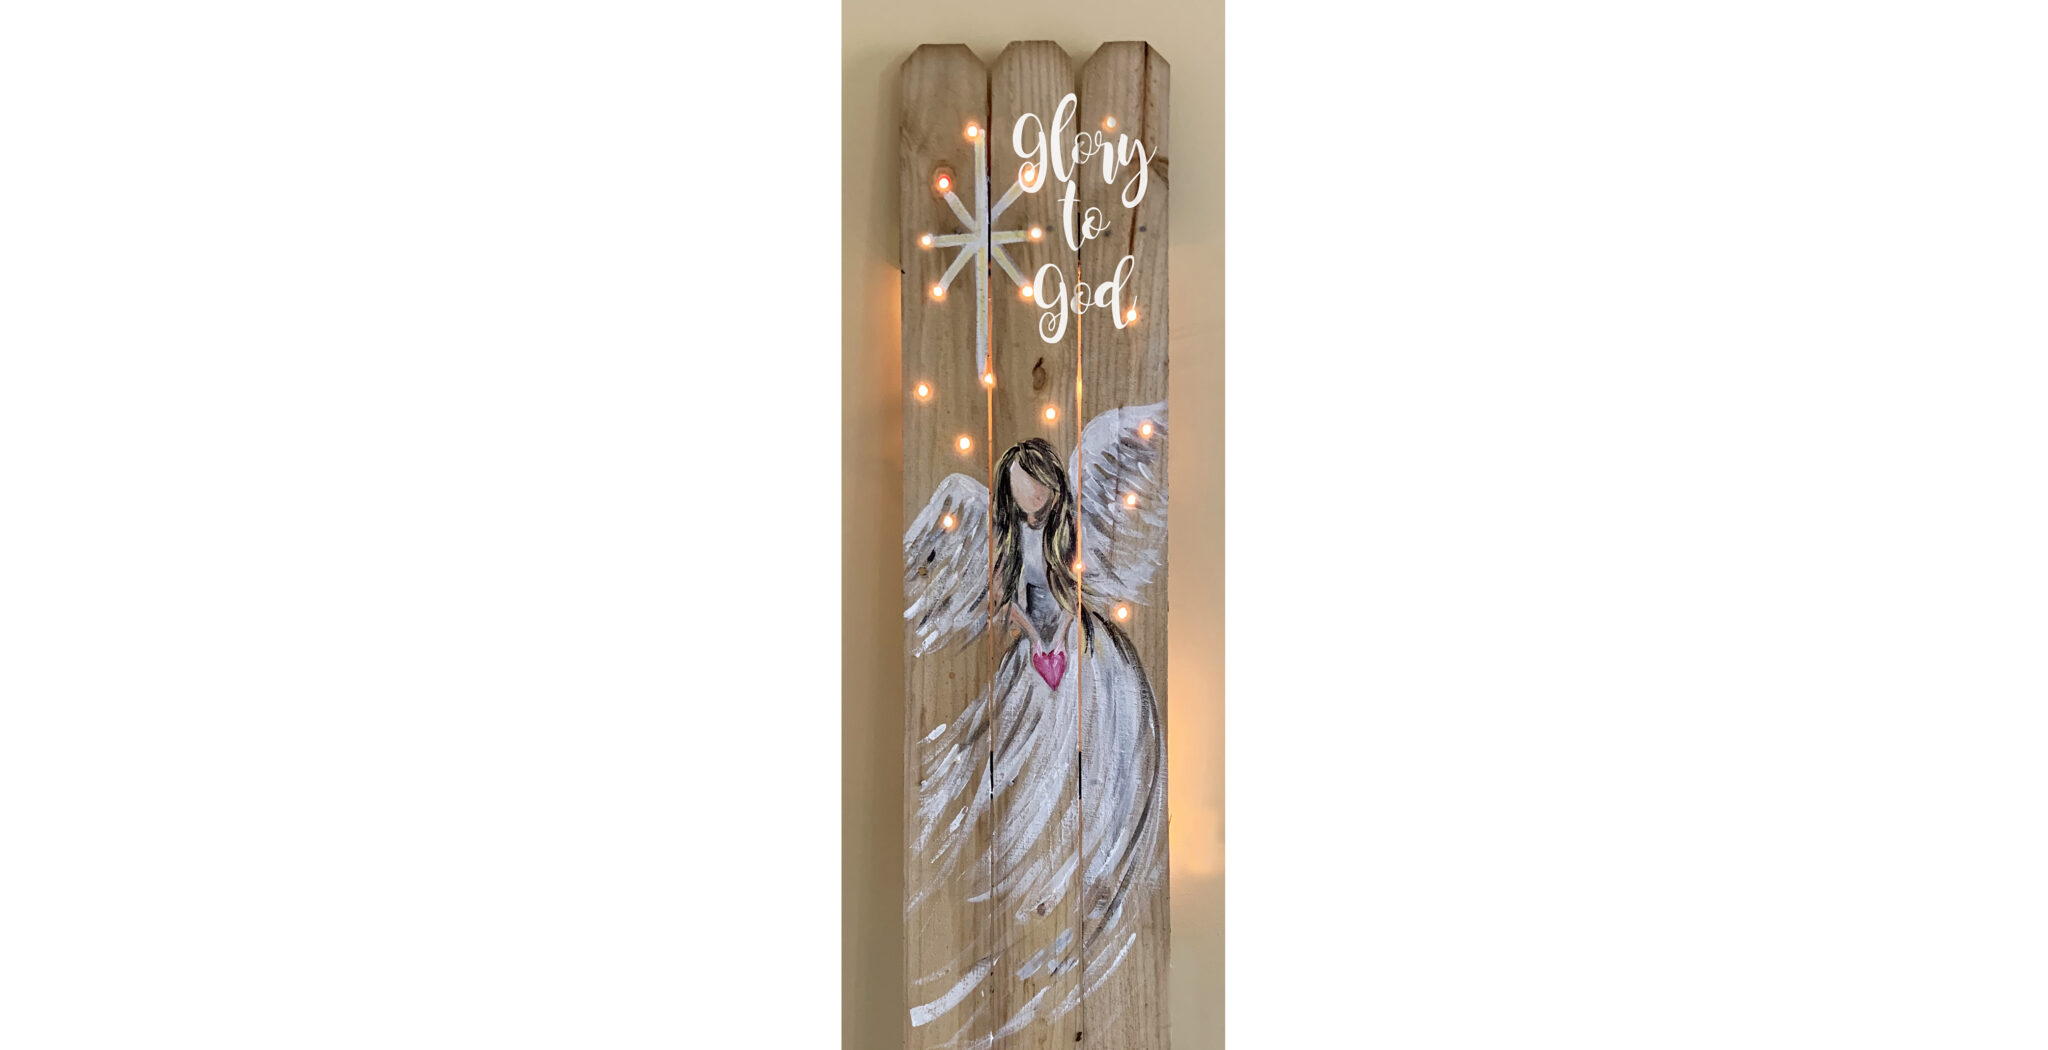 ANGEL WITH LIGHTS FENCE - NOV 19 - 6PM EYE CANDY HAIR STUDIO (Your choice of words)